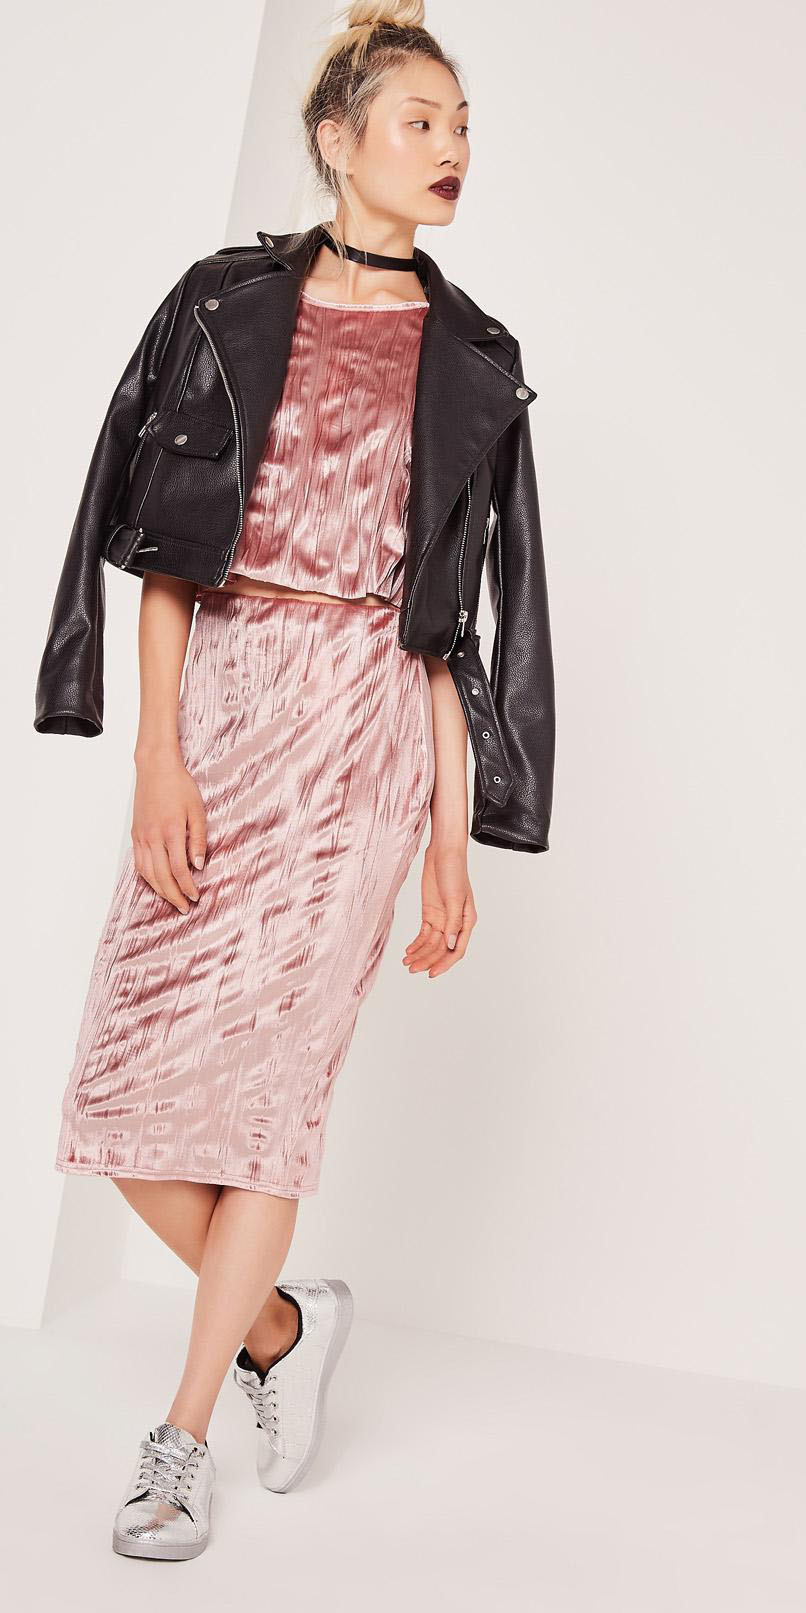 pink-light-midi-skirt-pink-light-sweater-matchset-gray-shoe-sneakers-silver-metallic-velvet-choker-bun-black-jacket-moto-fall-winter-blonde-weekend.jpg